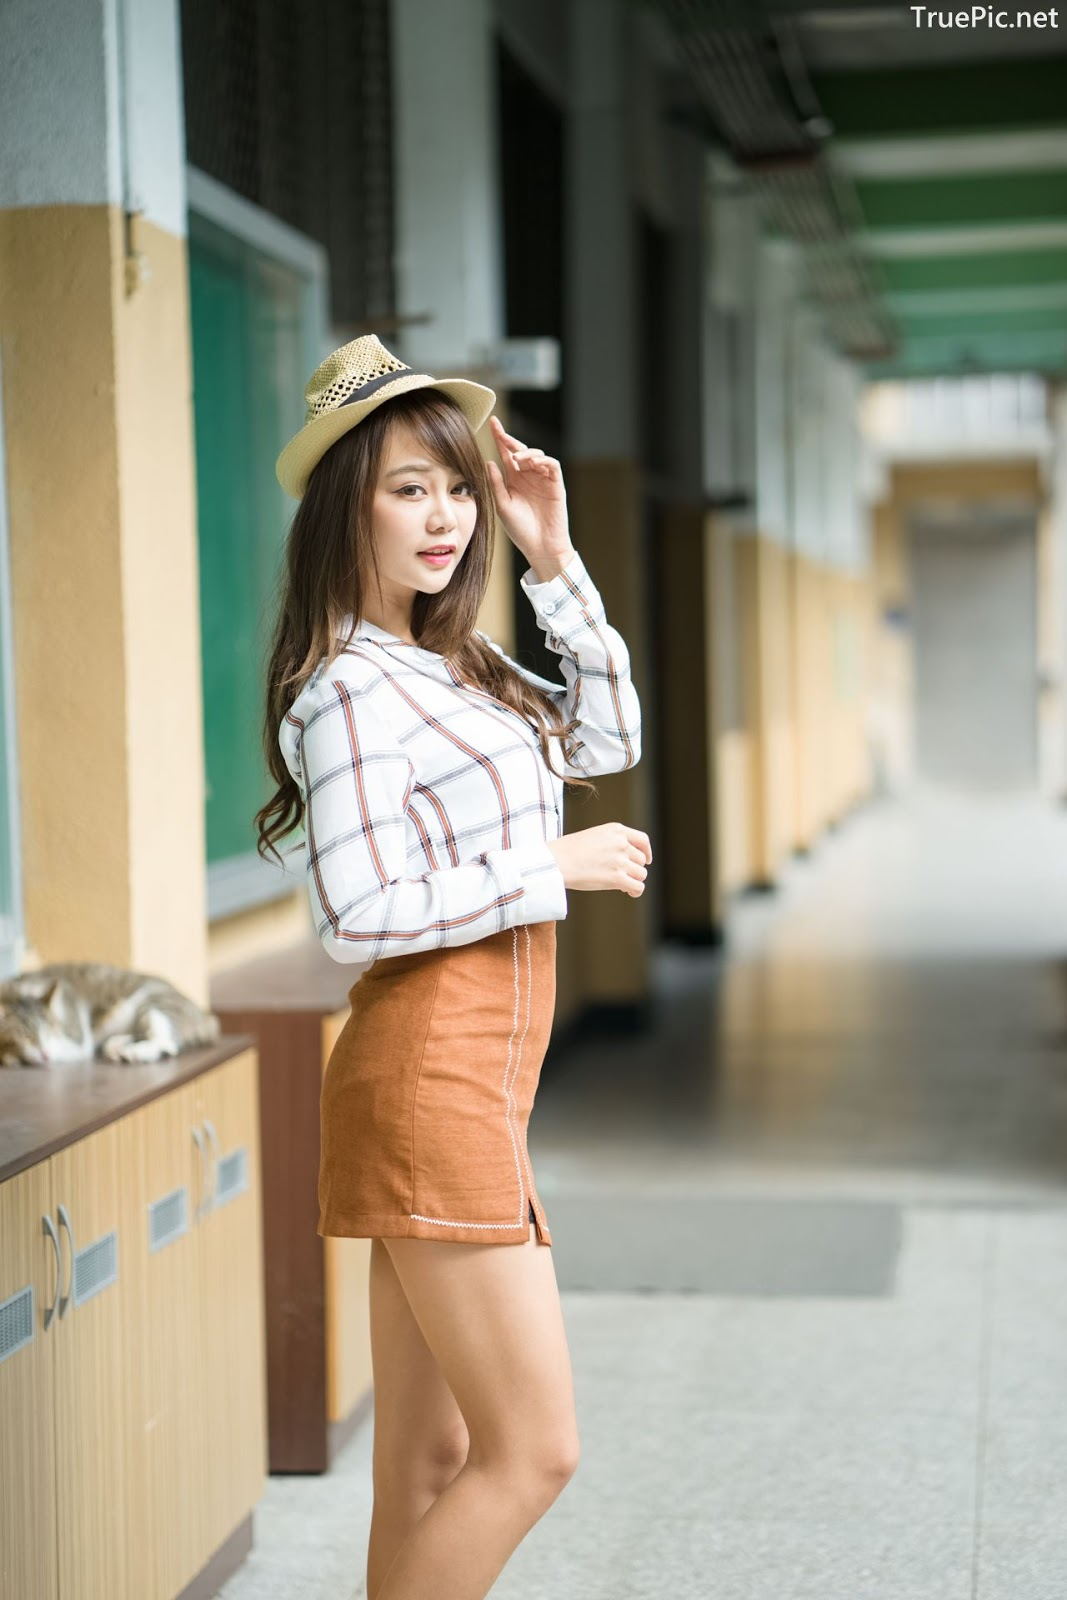 Image-Taiwan-Social-Celebrity-Sun-Hui-Tong-孫卉彤-A-Day-as-Student-Girl-TruePic.net- Picture-9